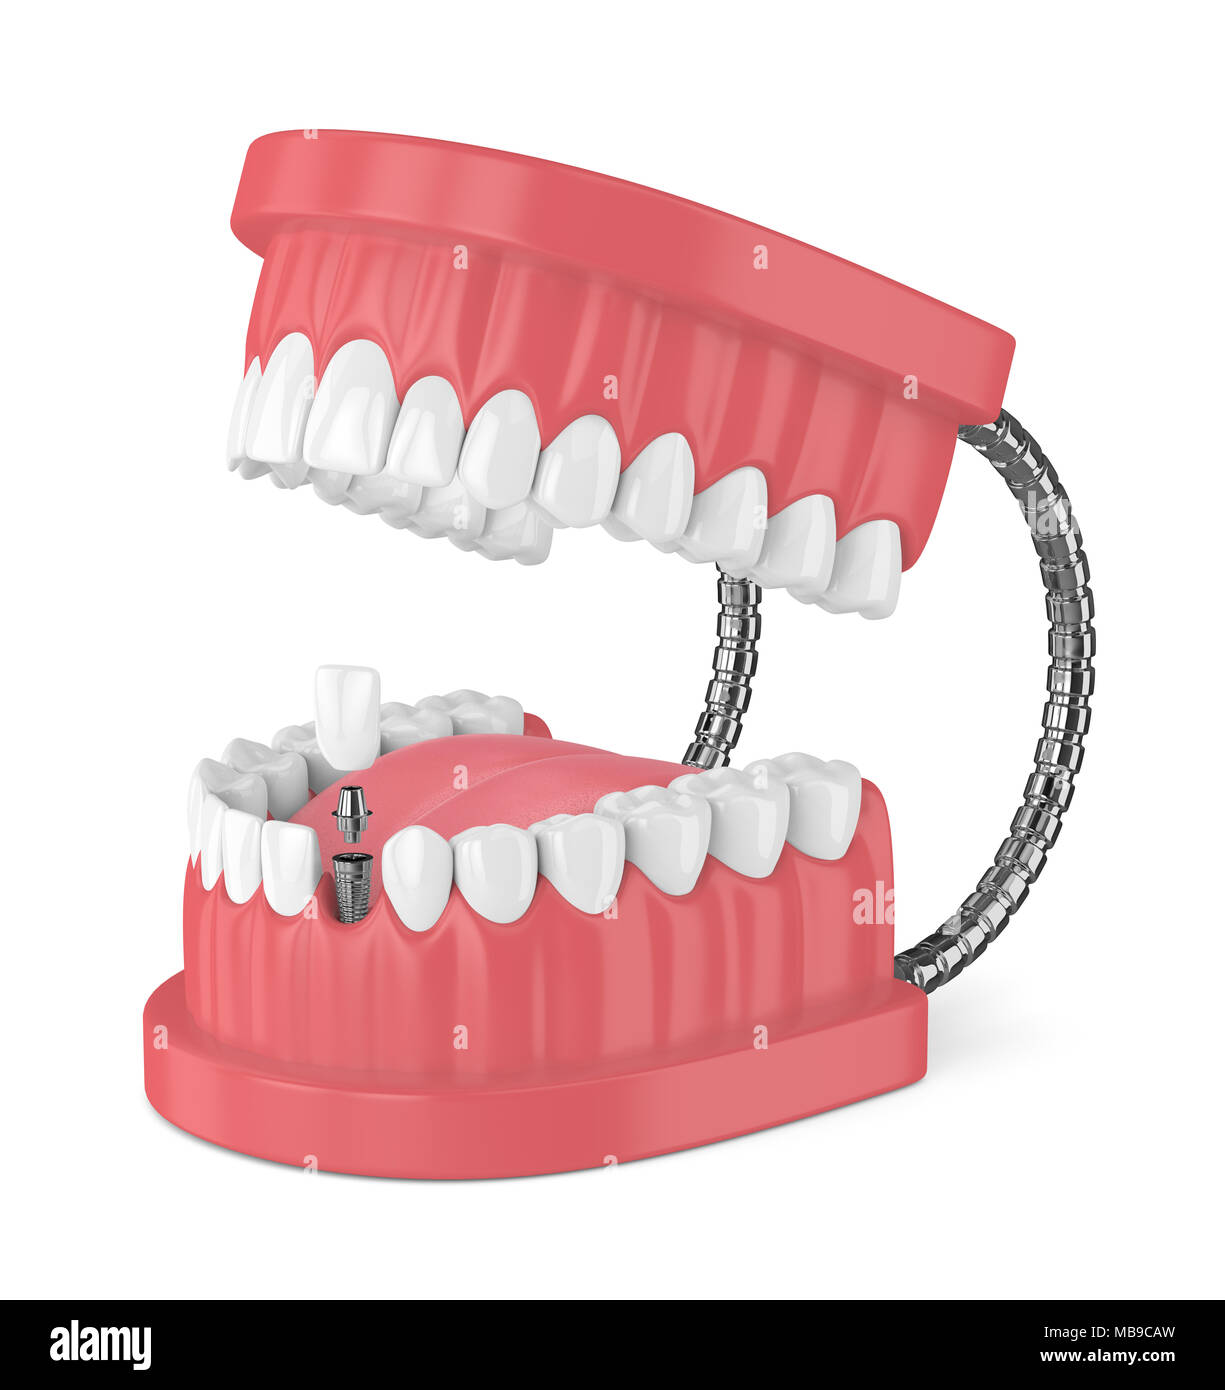 Incisor Teeth Stock Photos & Incisor Teeth Stock Images - Alamy